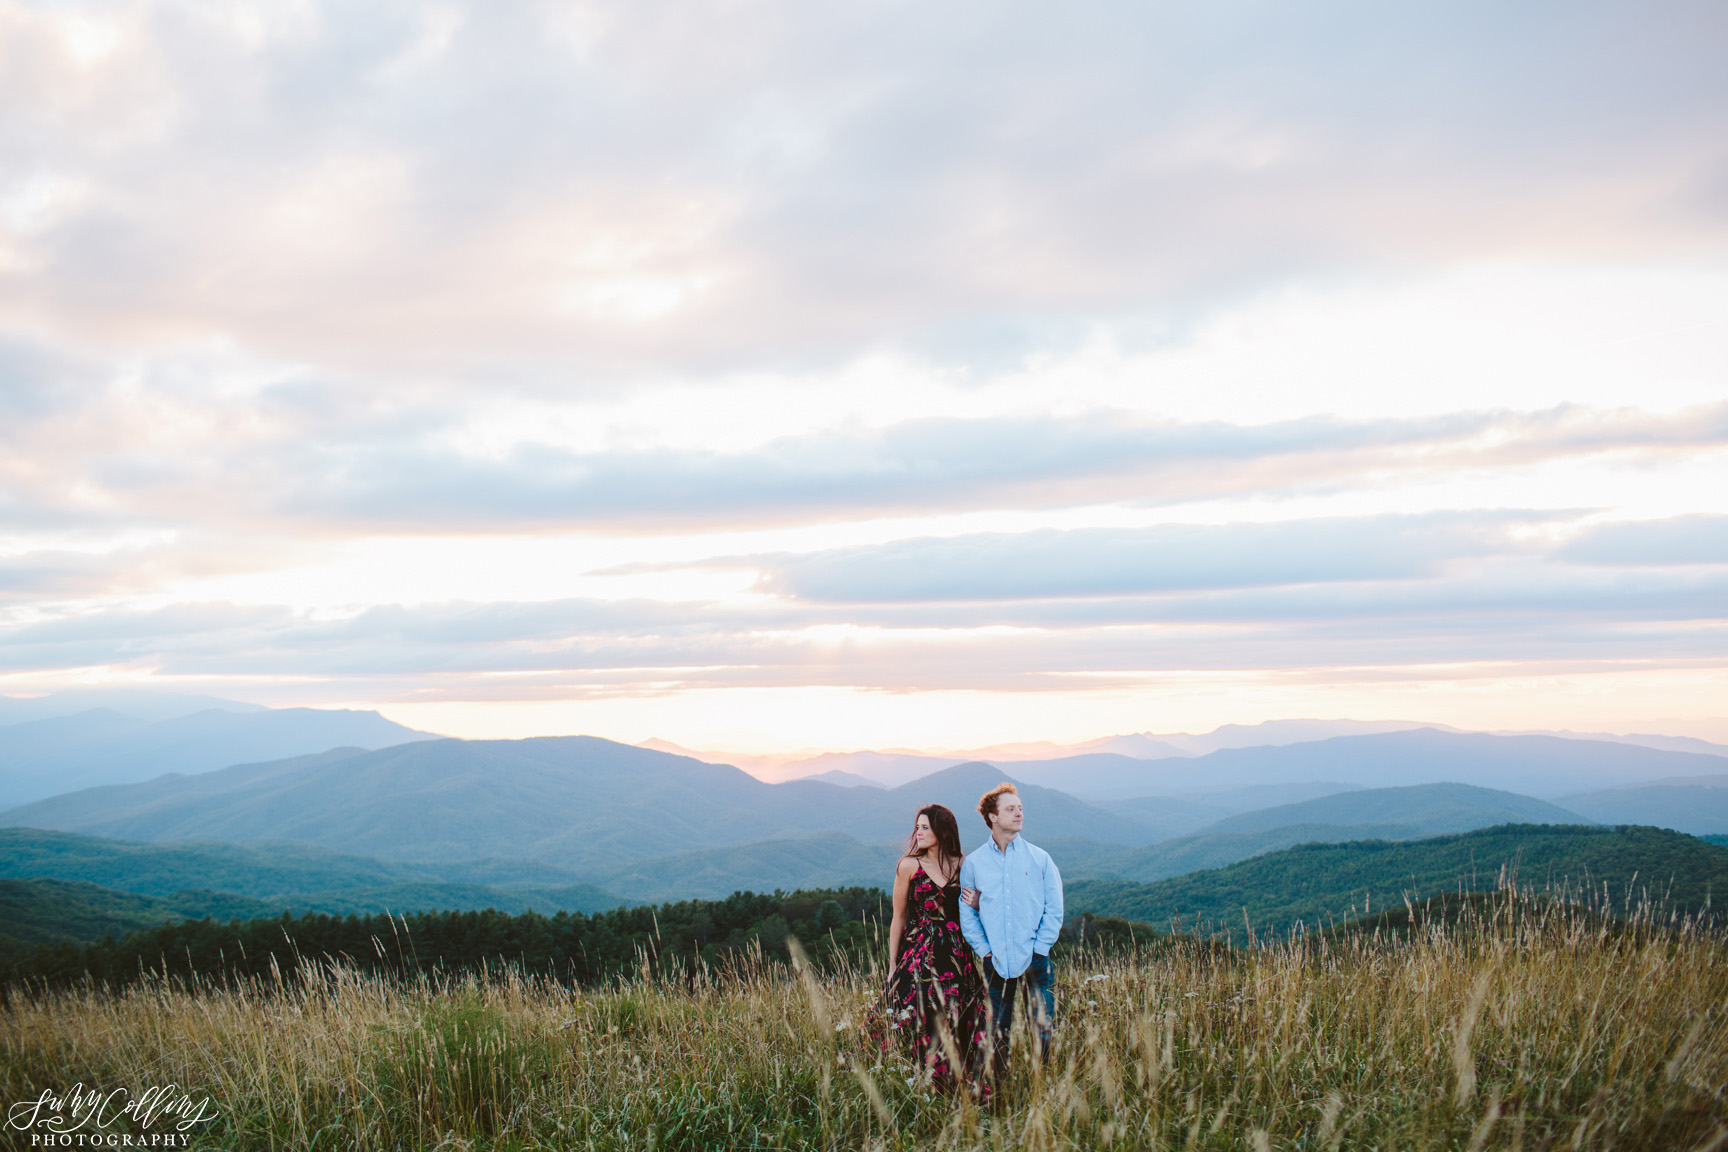 poses, couples, outdoor, max patch, Knoxville, Tennessee, engagement, sunset, evening, love, vibrant, colorful, bright, creative, romantic, natural, light and airy, natural light, passion, inspiration, intimate, outfits, fountain, woods, field, sunrise, windy, North Carolina